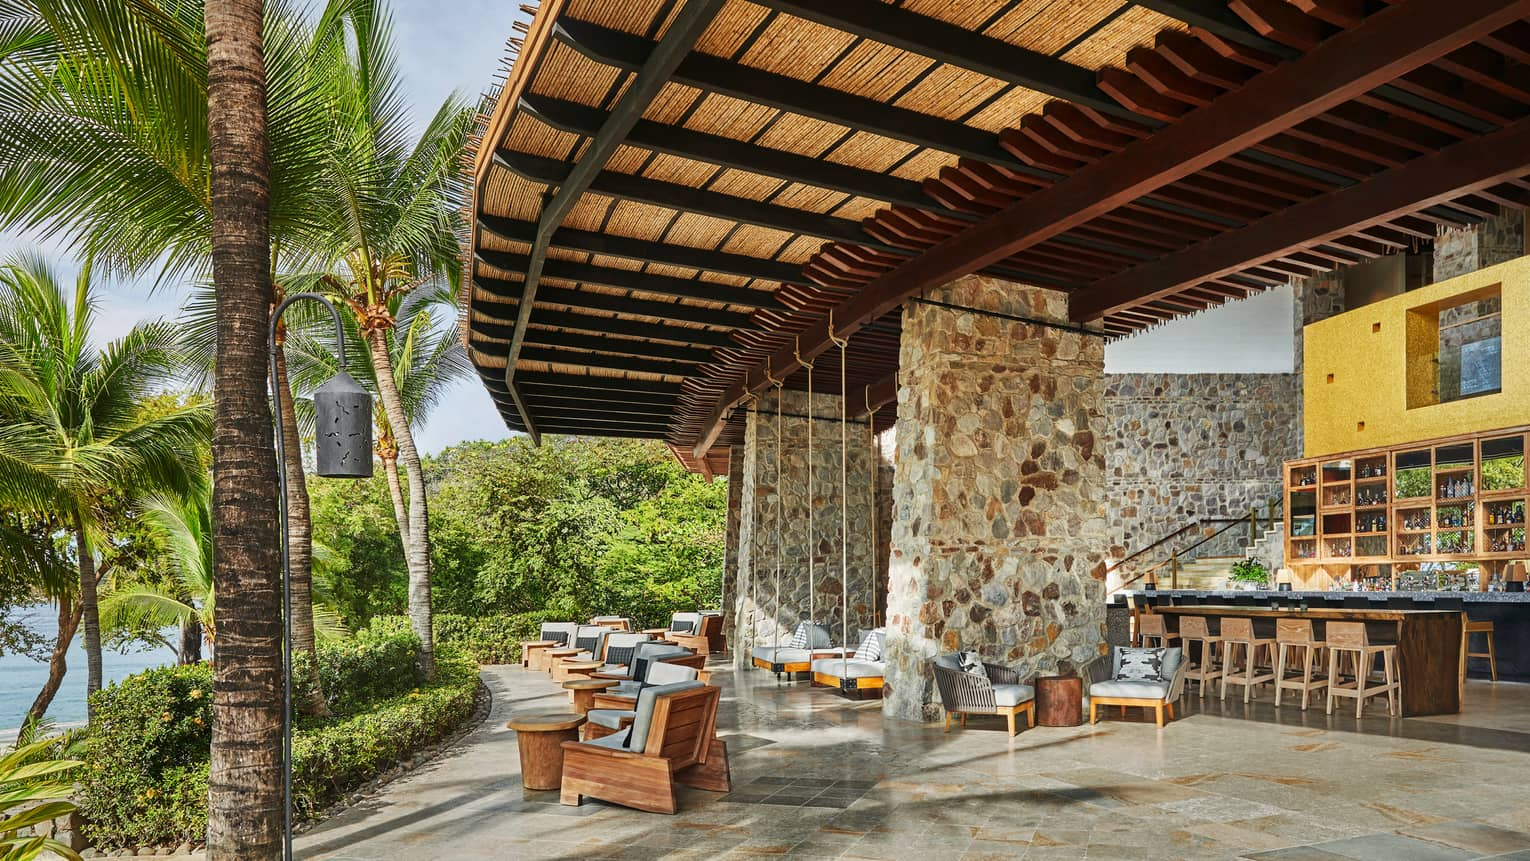 Anejo bar under large stone pillars, curved rattan roof over lounge chairs looking out at palms